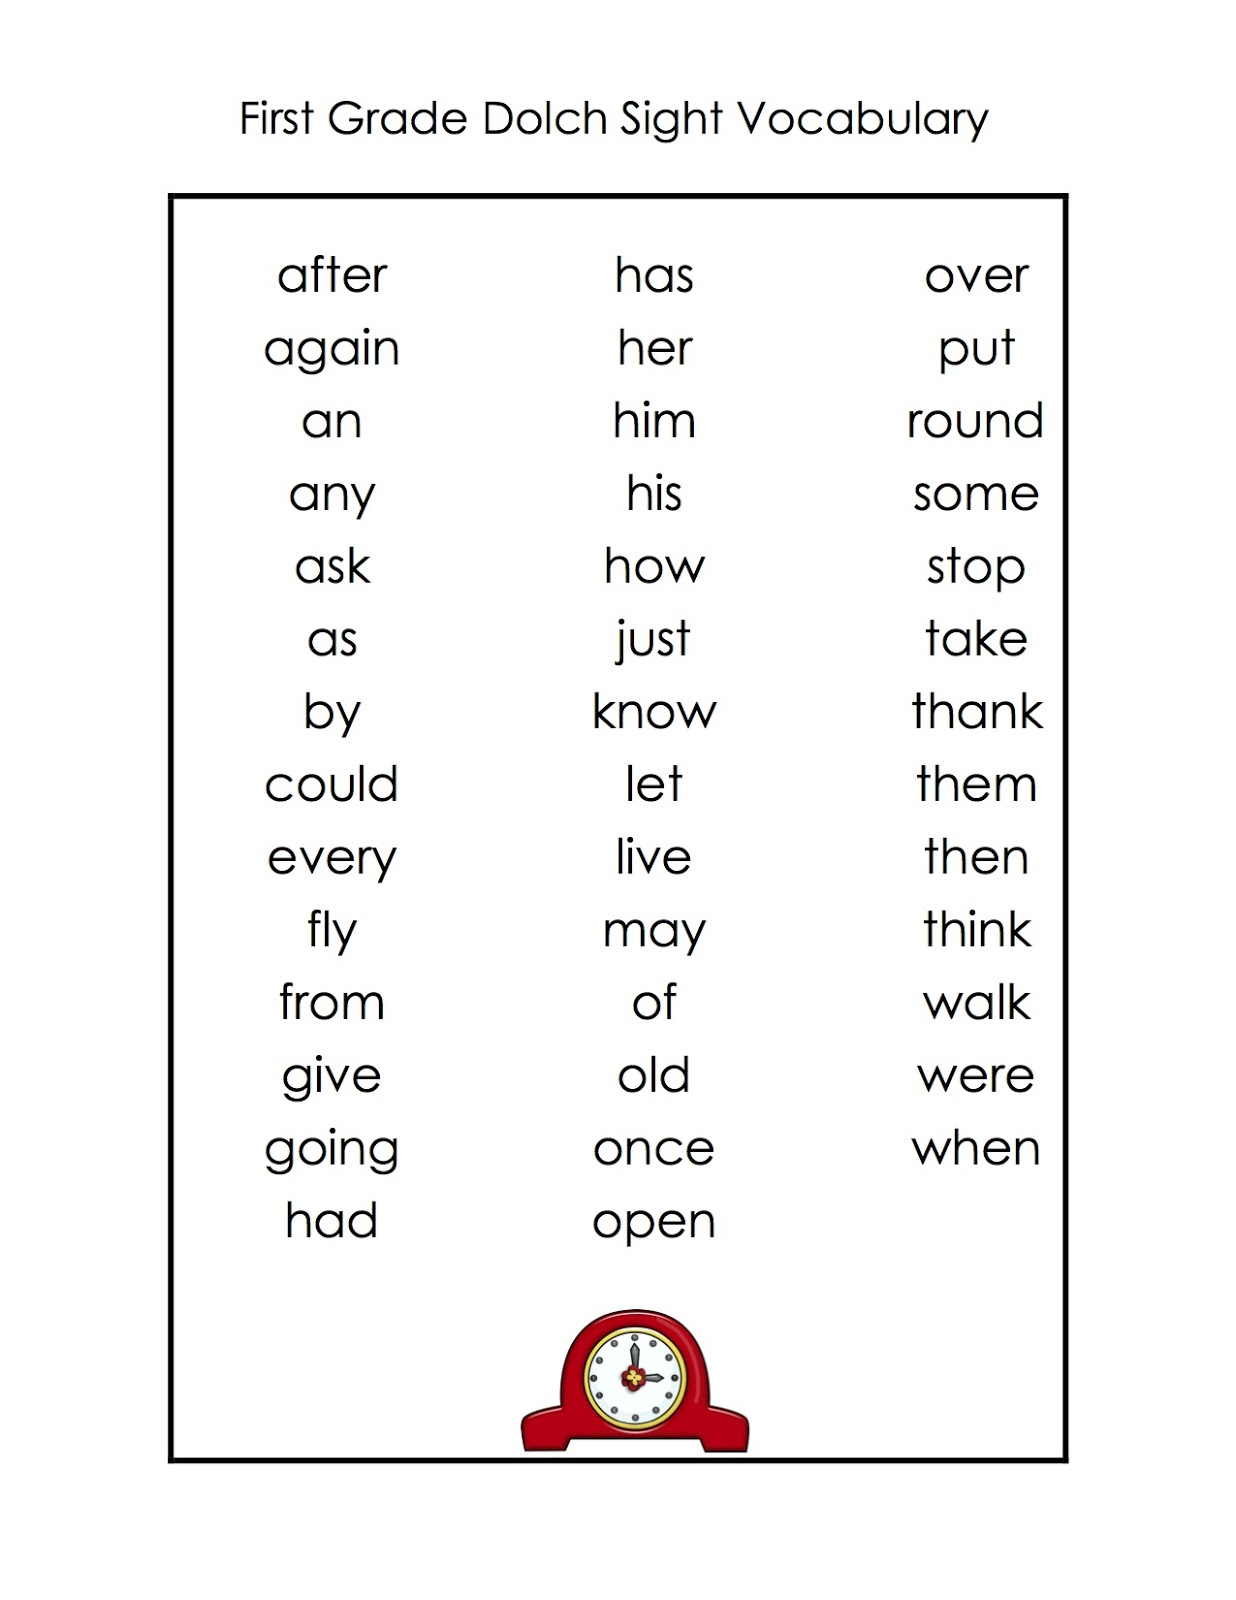 Cloze Passages Worksheets 4th Grade   Printable Worksheets and Activities  for Teachers [ 1600 x 1236 Pixel ]